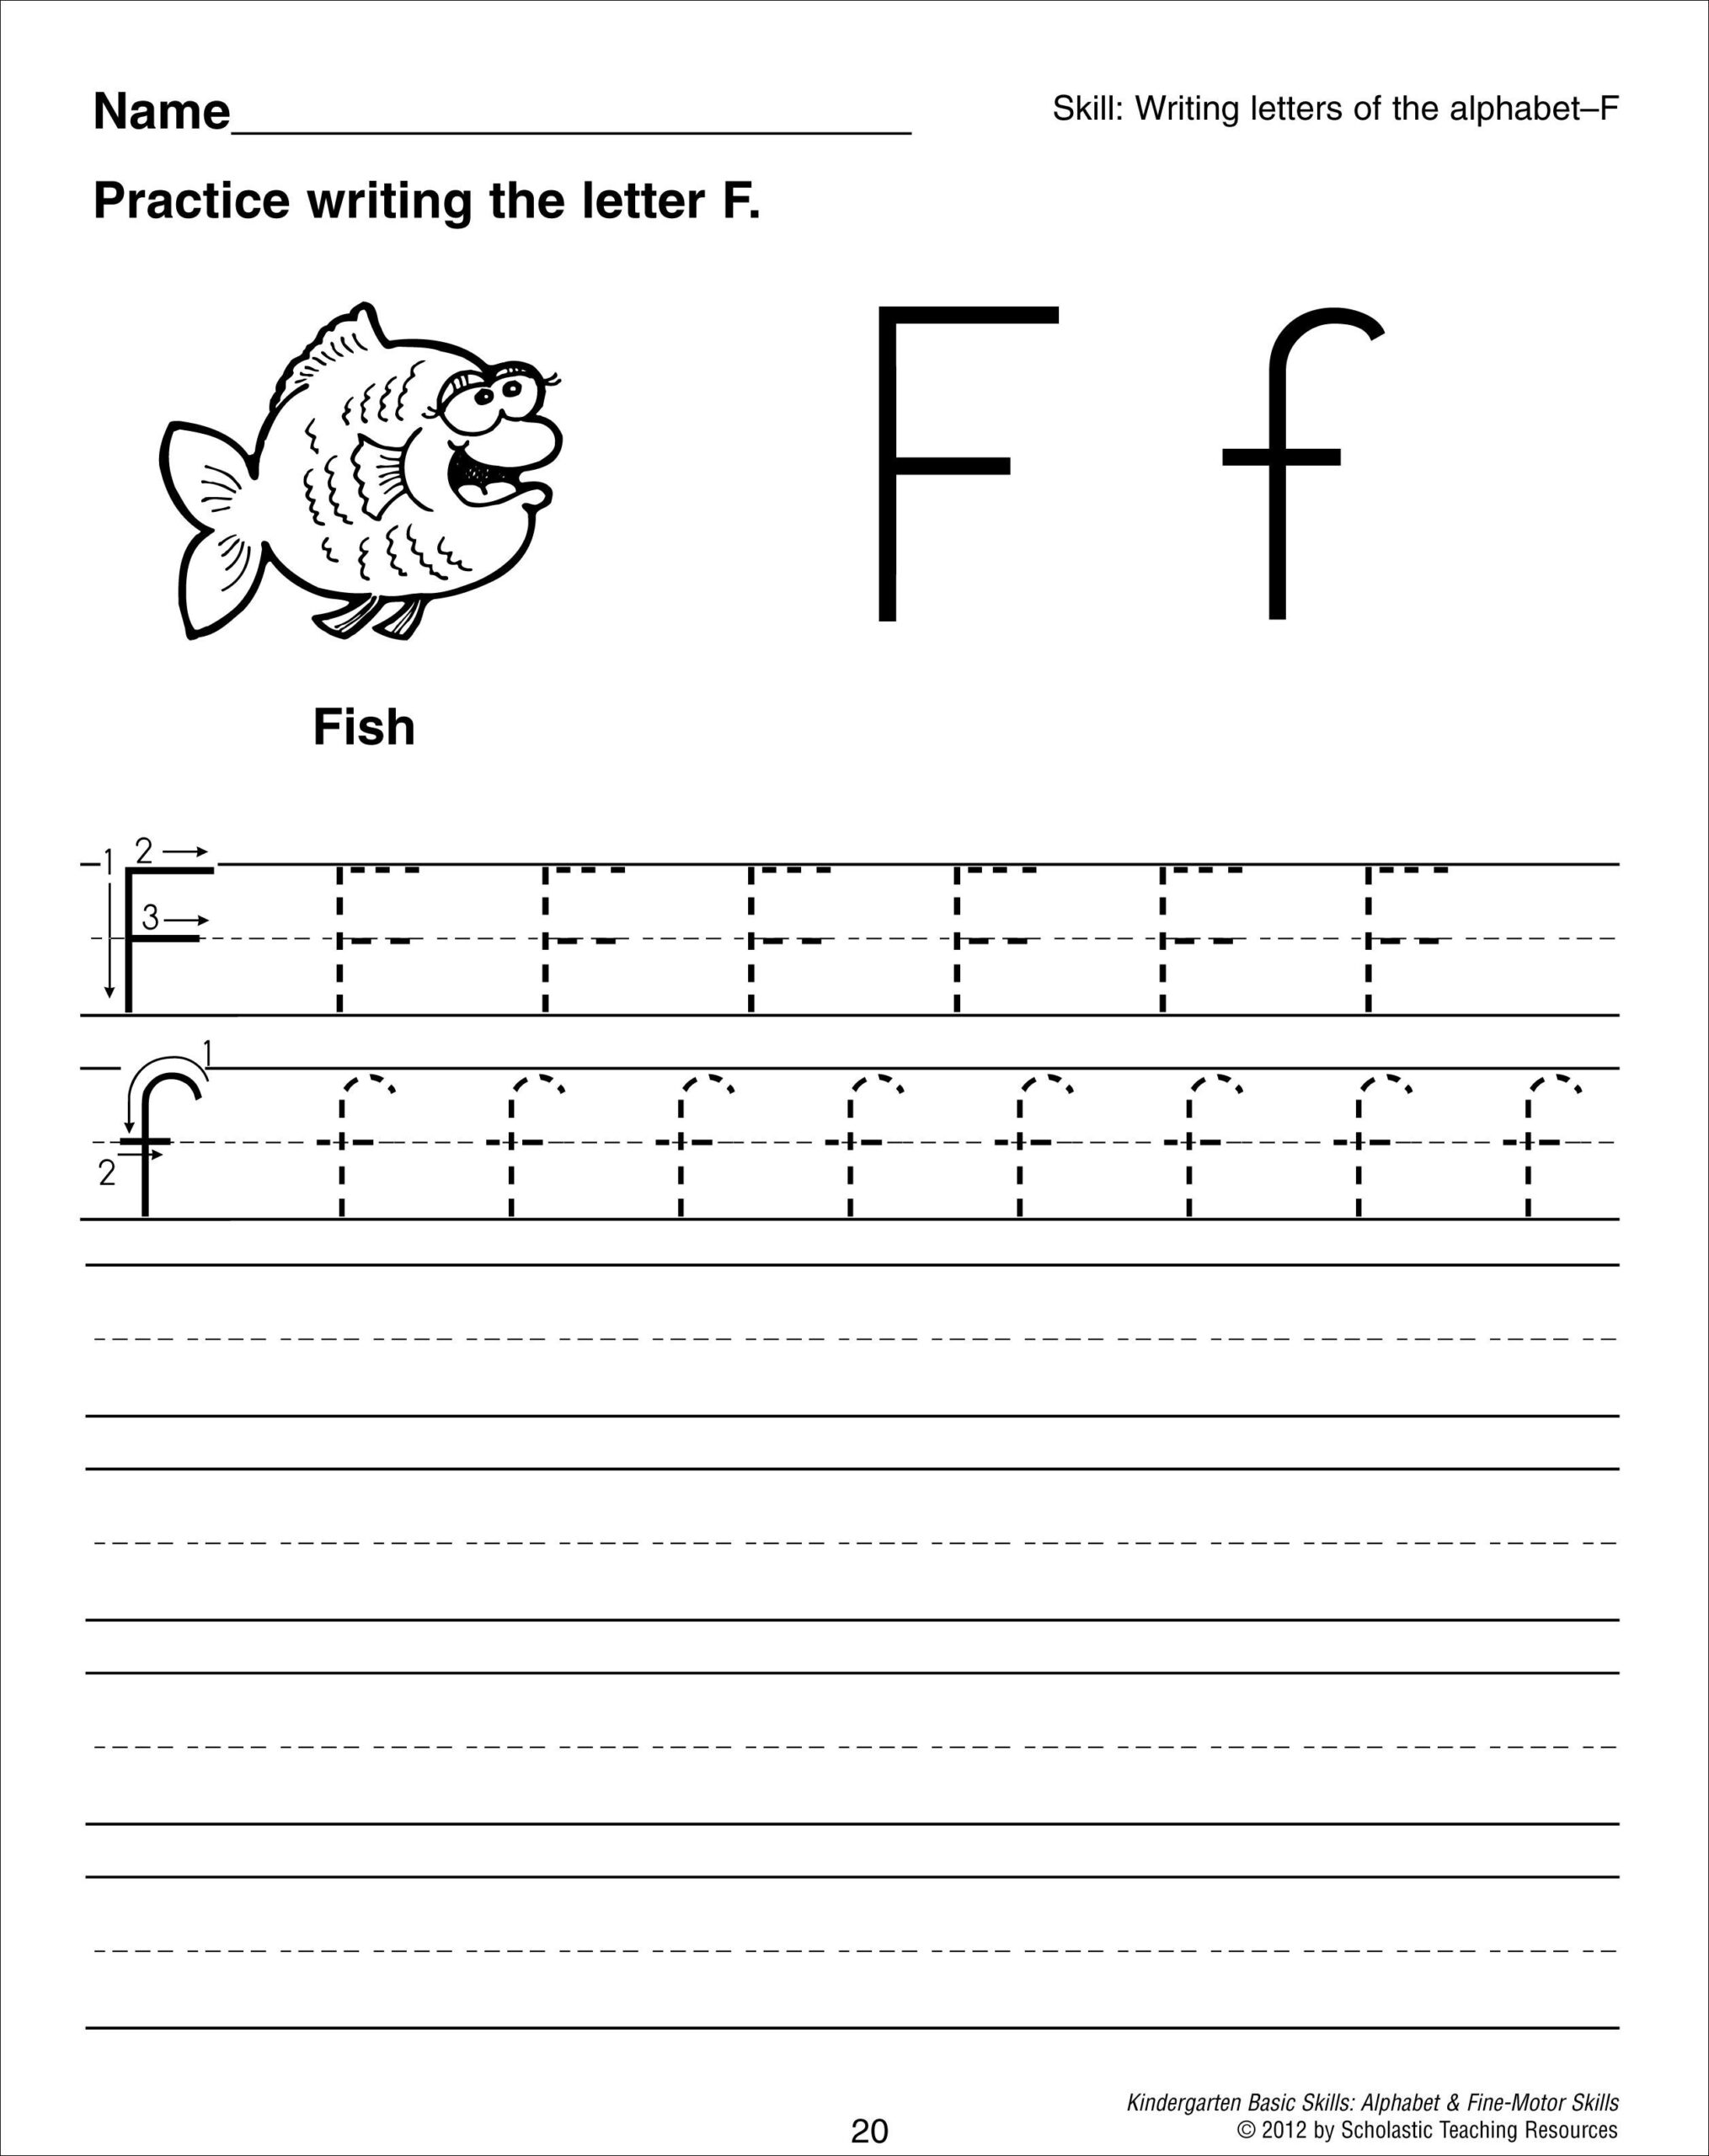 Pintabatha Stopperich On Preschool Worksheets & Crafts for Letter F Tracing Printable